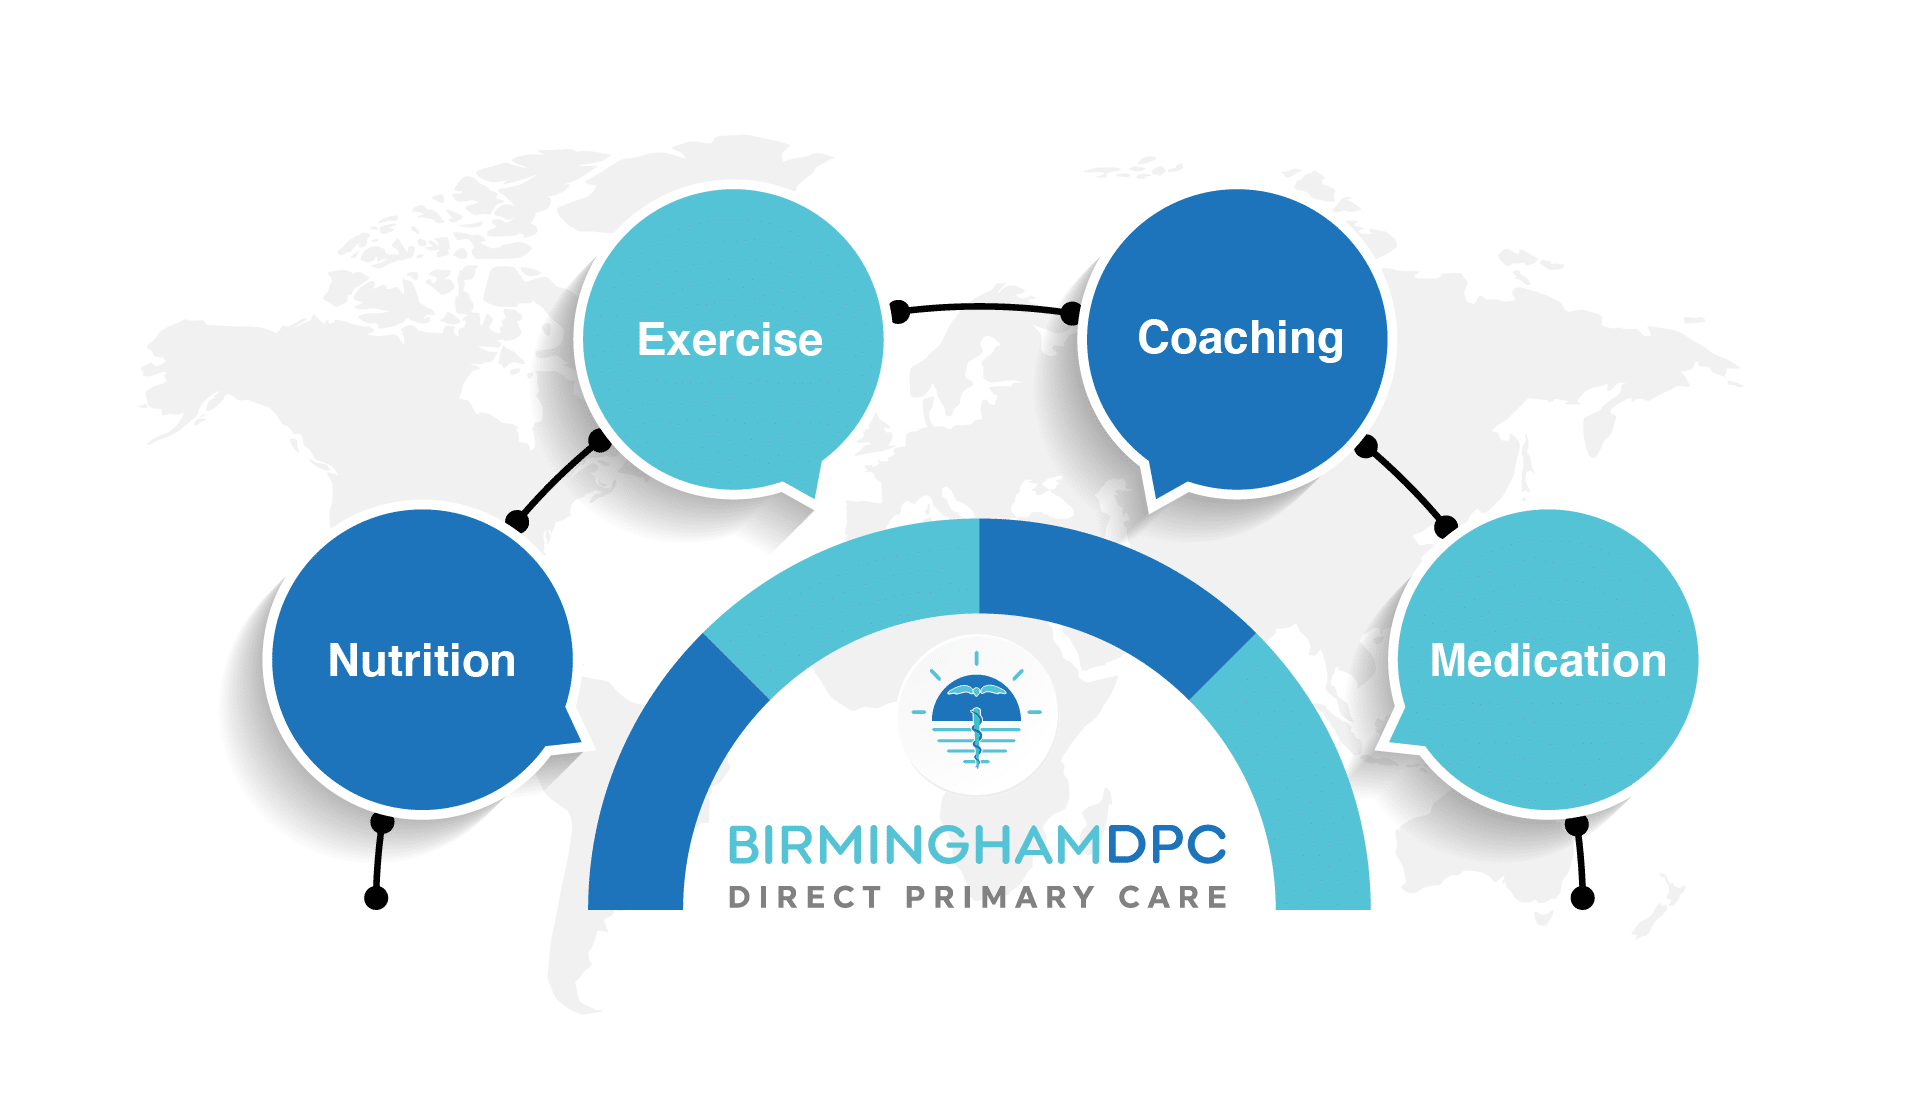 Birmingham DPC: Obesity Management Method